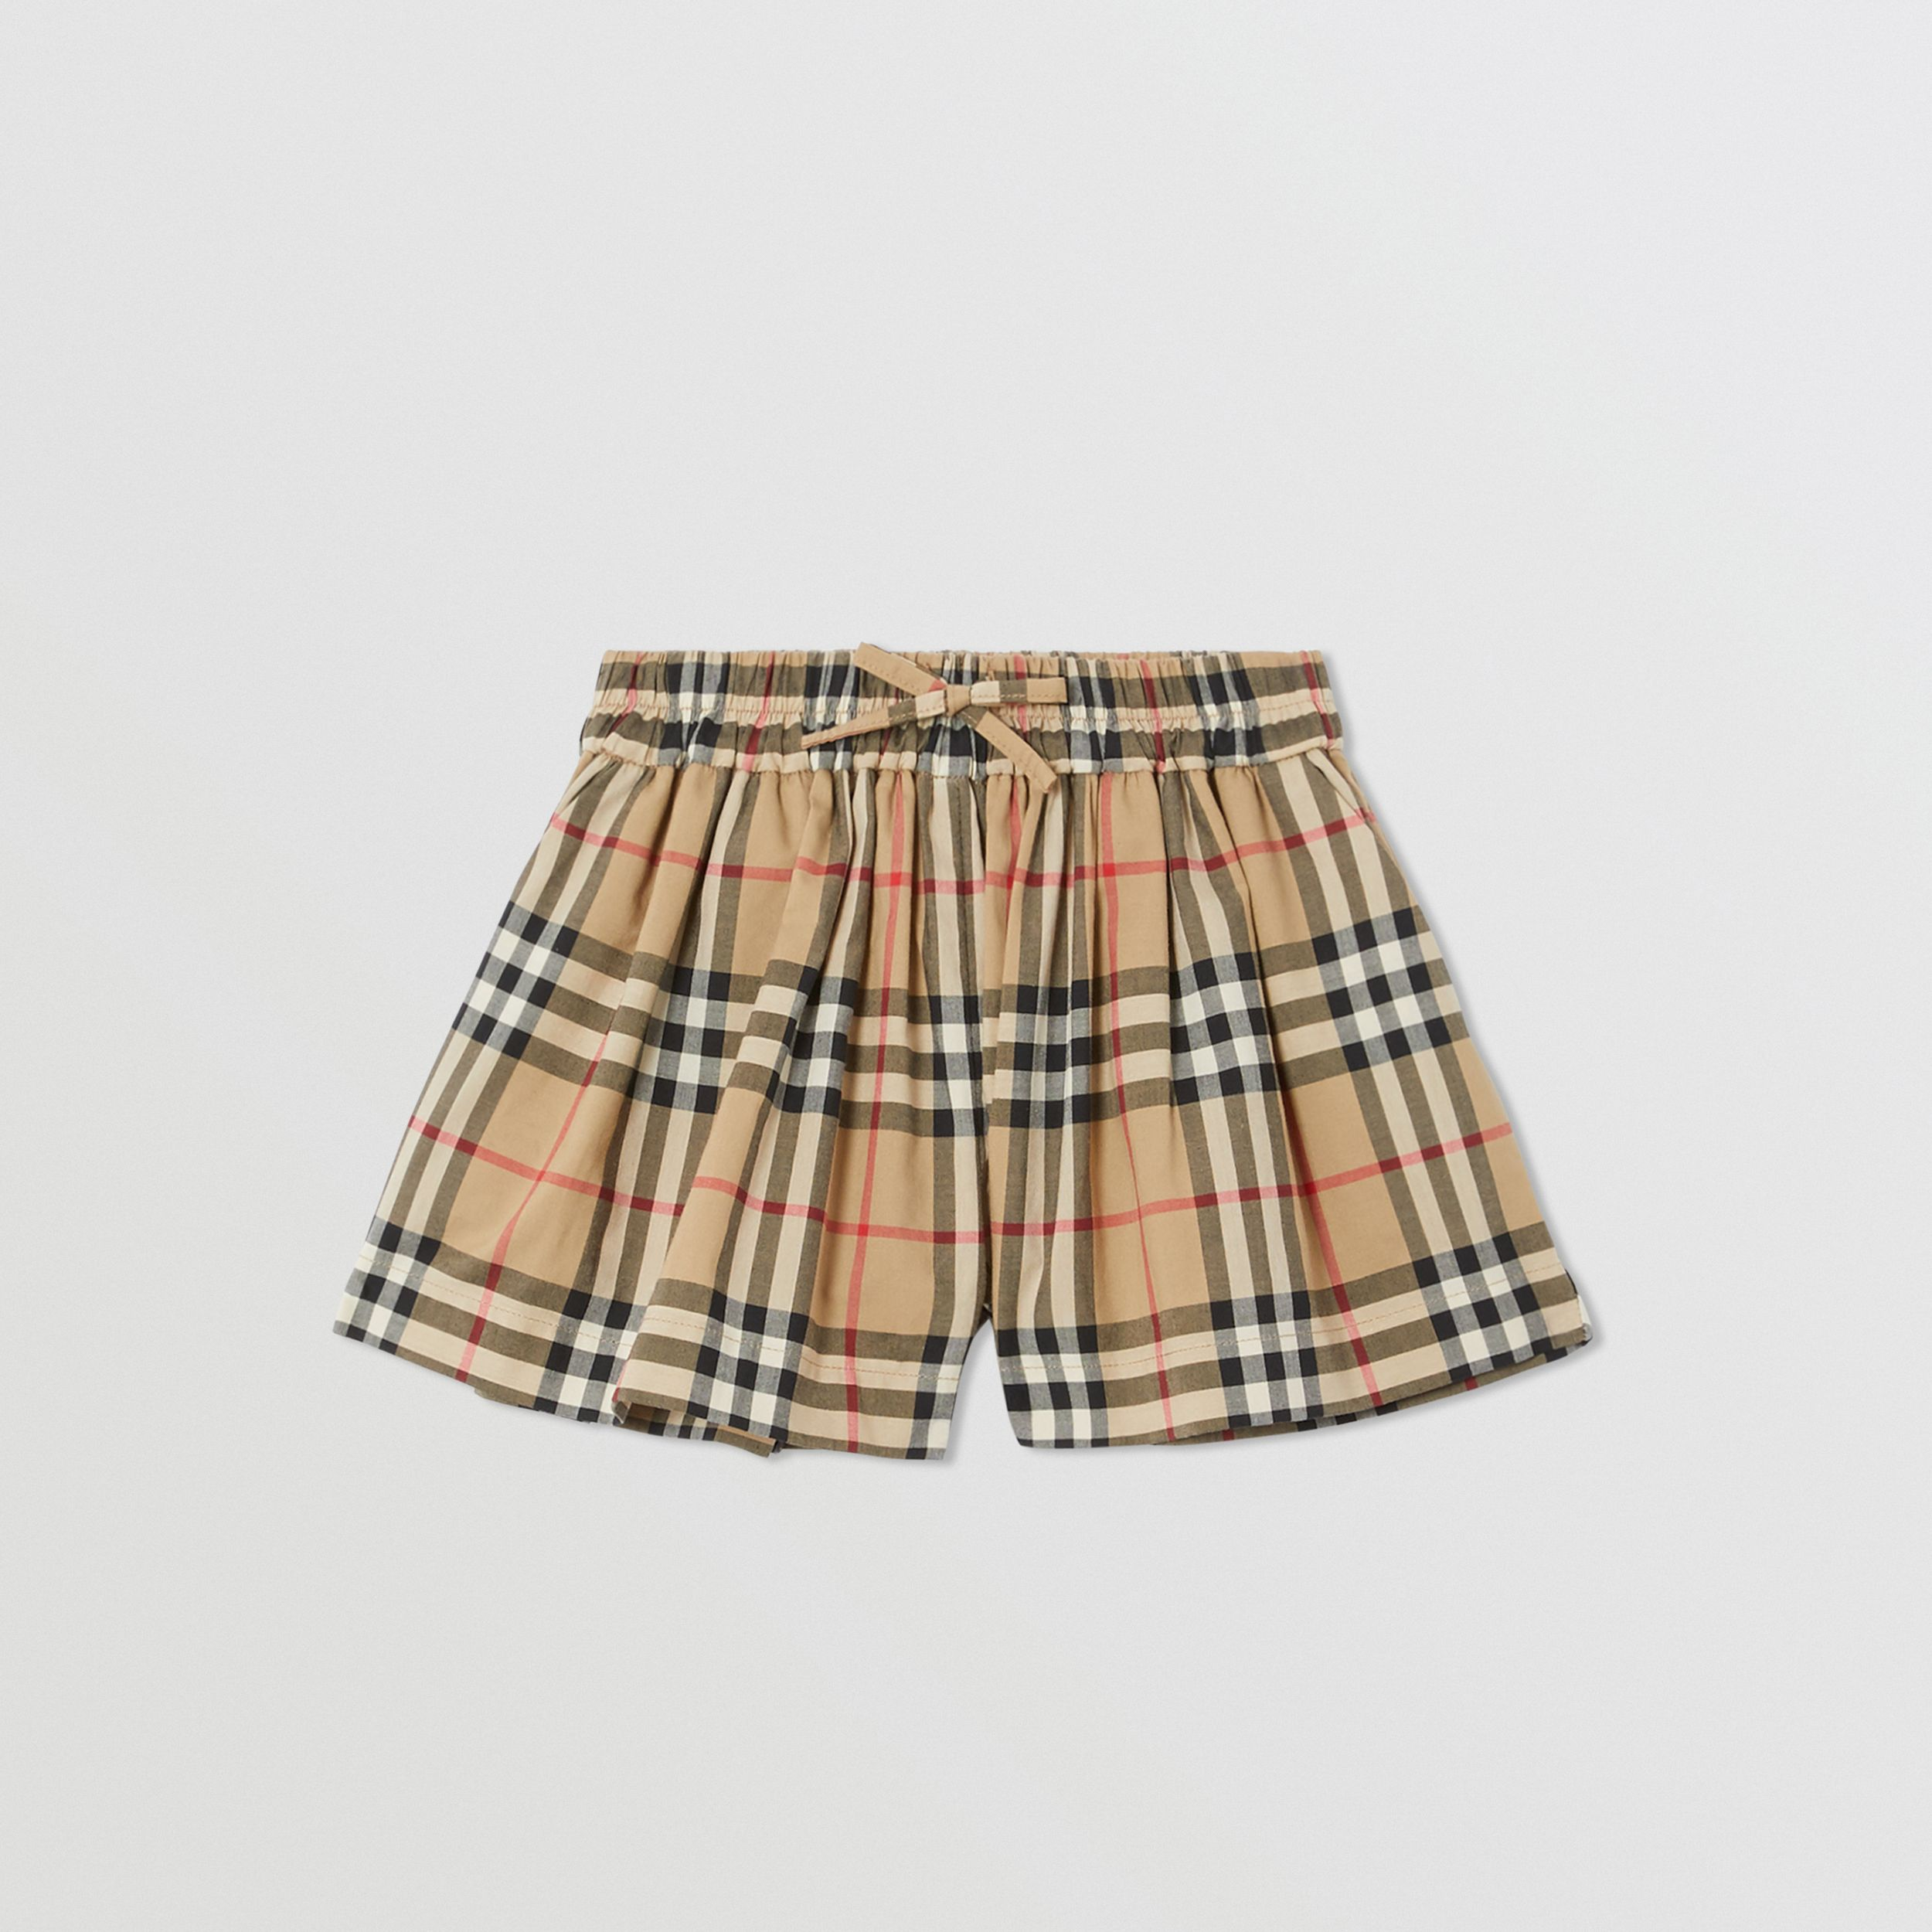 Vintage Check Gathered Cotton Shorts in Archive Beige - Children | Burberry - 1